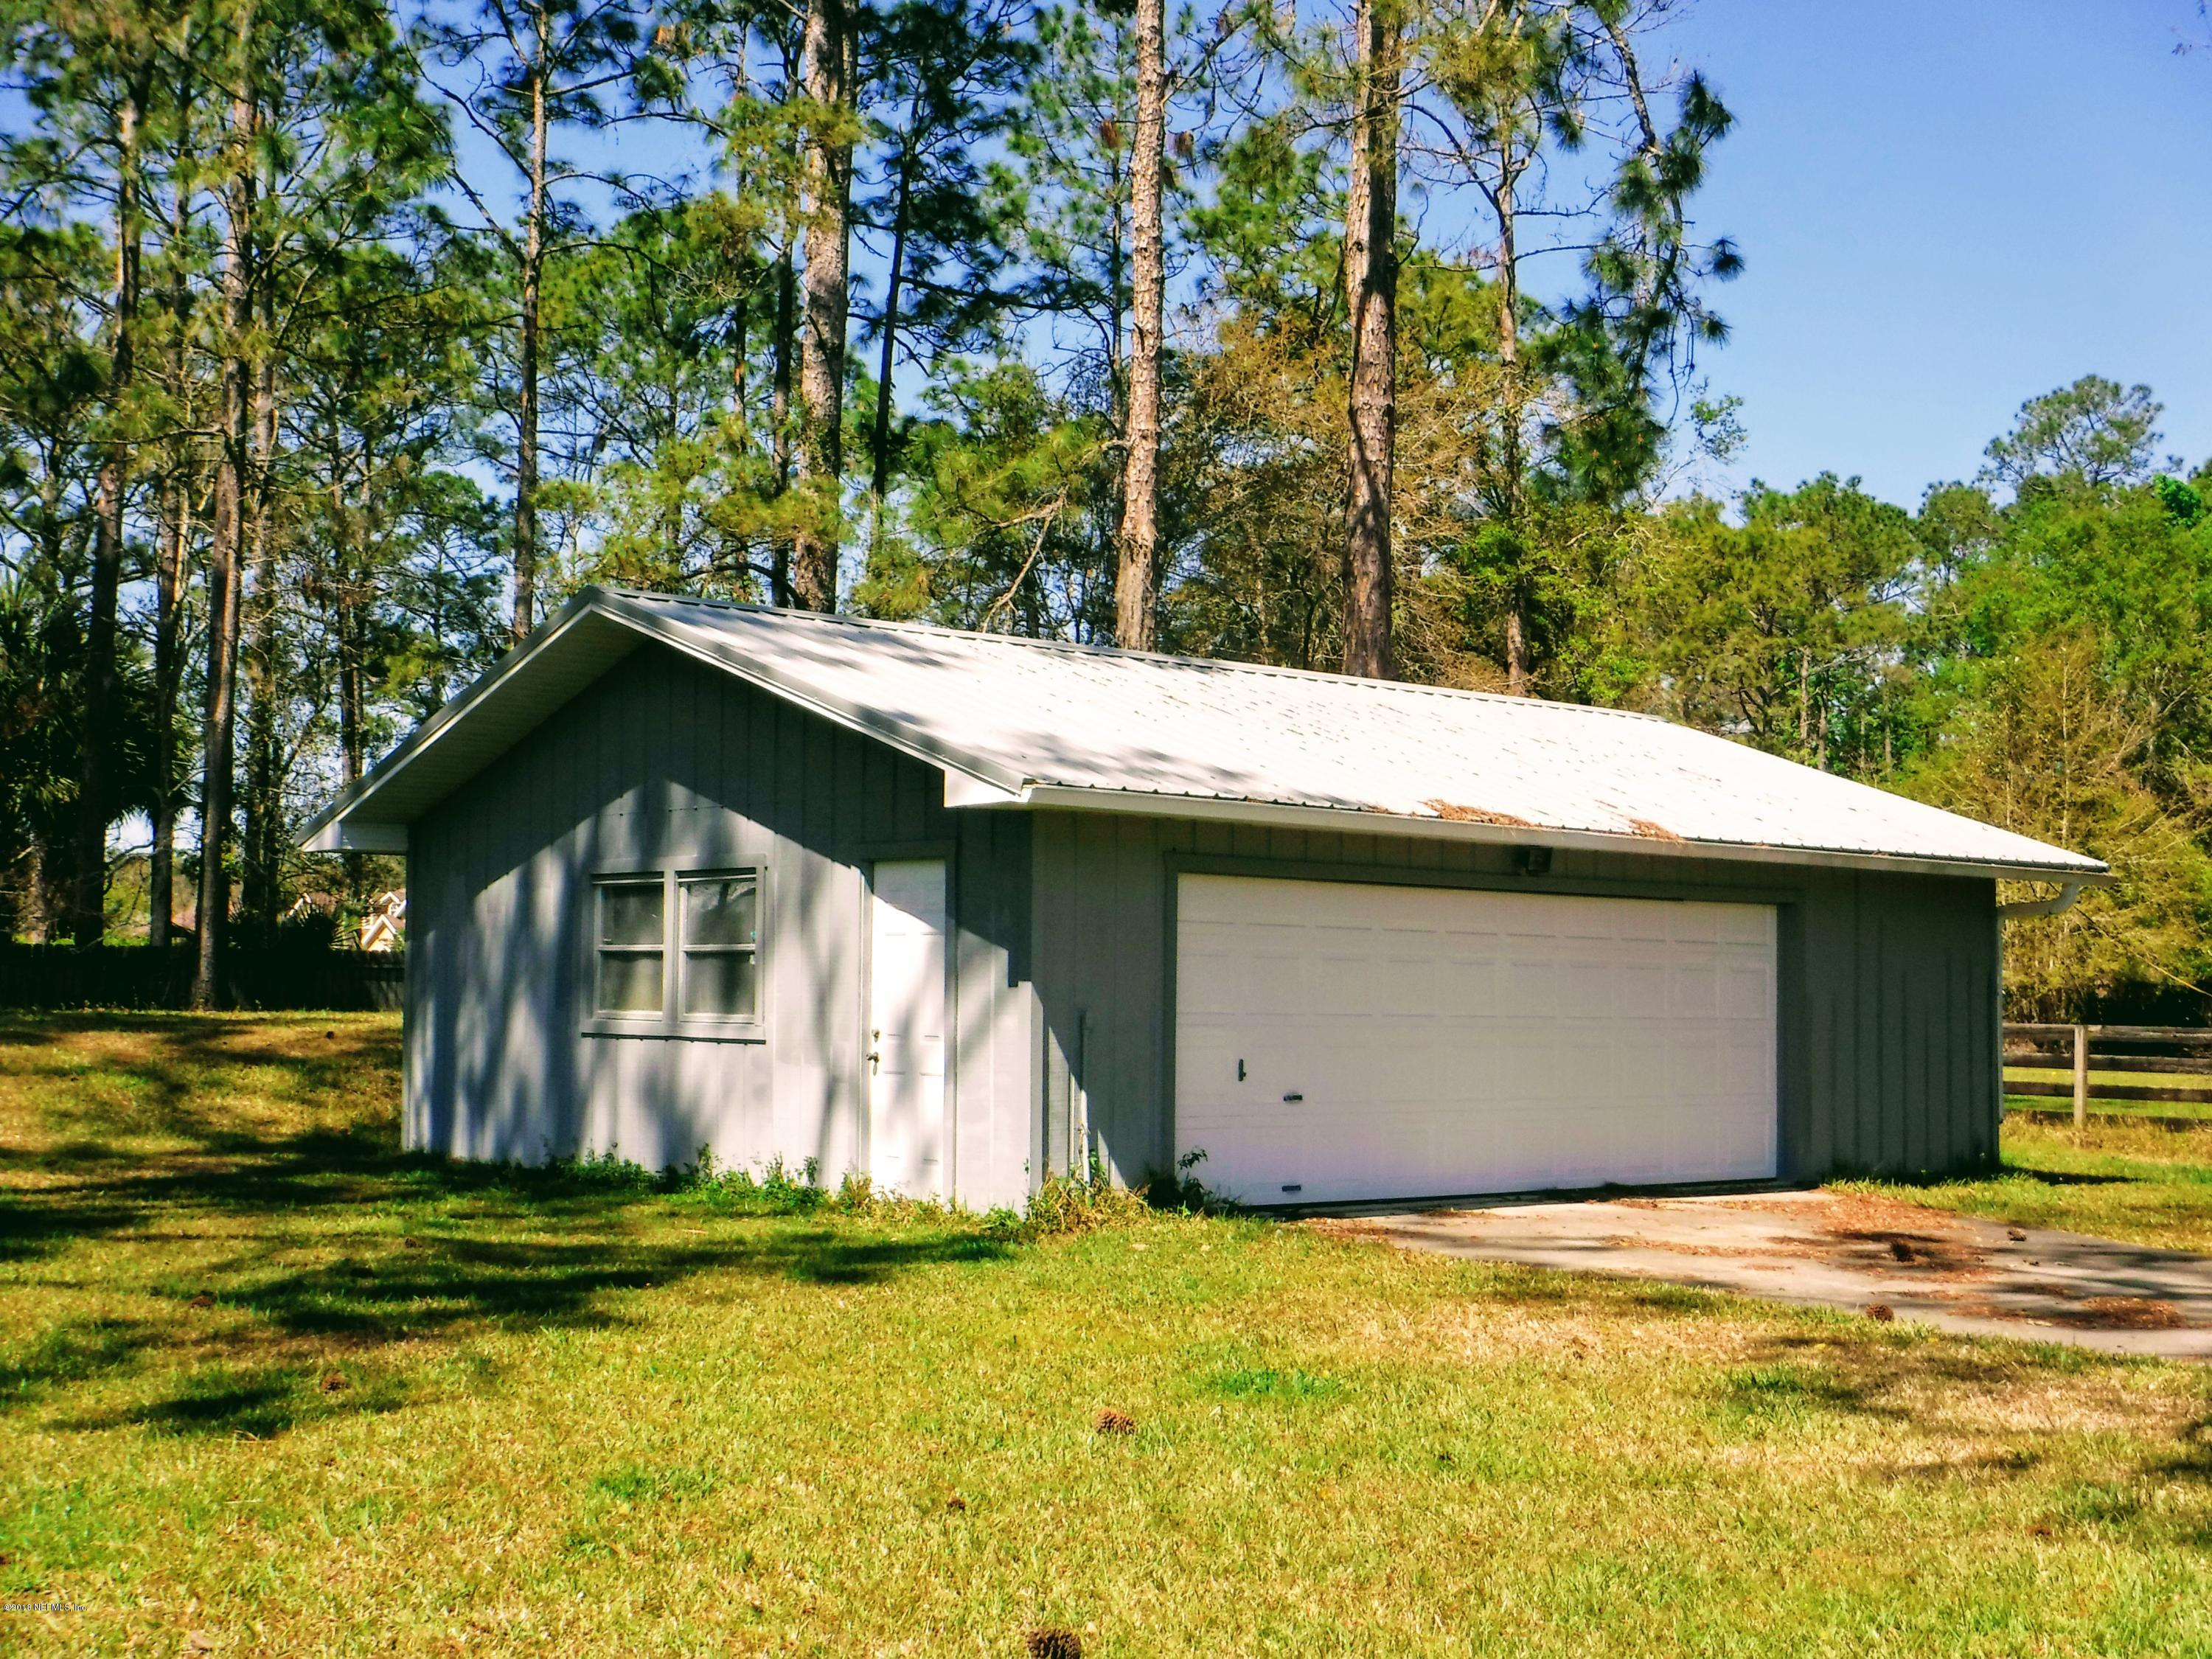 155 CONFEDERATE POINT, PALATKA, FLORIDA 32177, 4 Bedrooms Bedrooms, ,2 BathroomsBathrooms,Residential - single family,For sale,CONFEDERATE POINT,926252